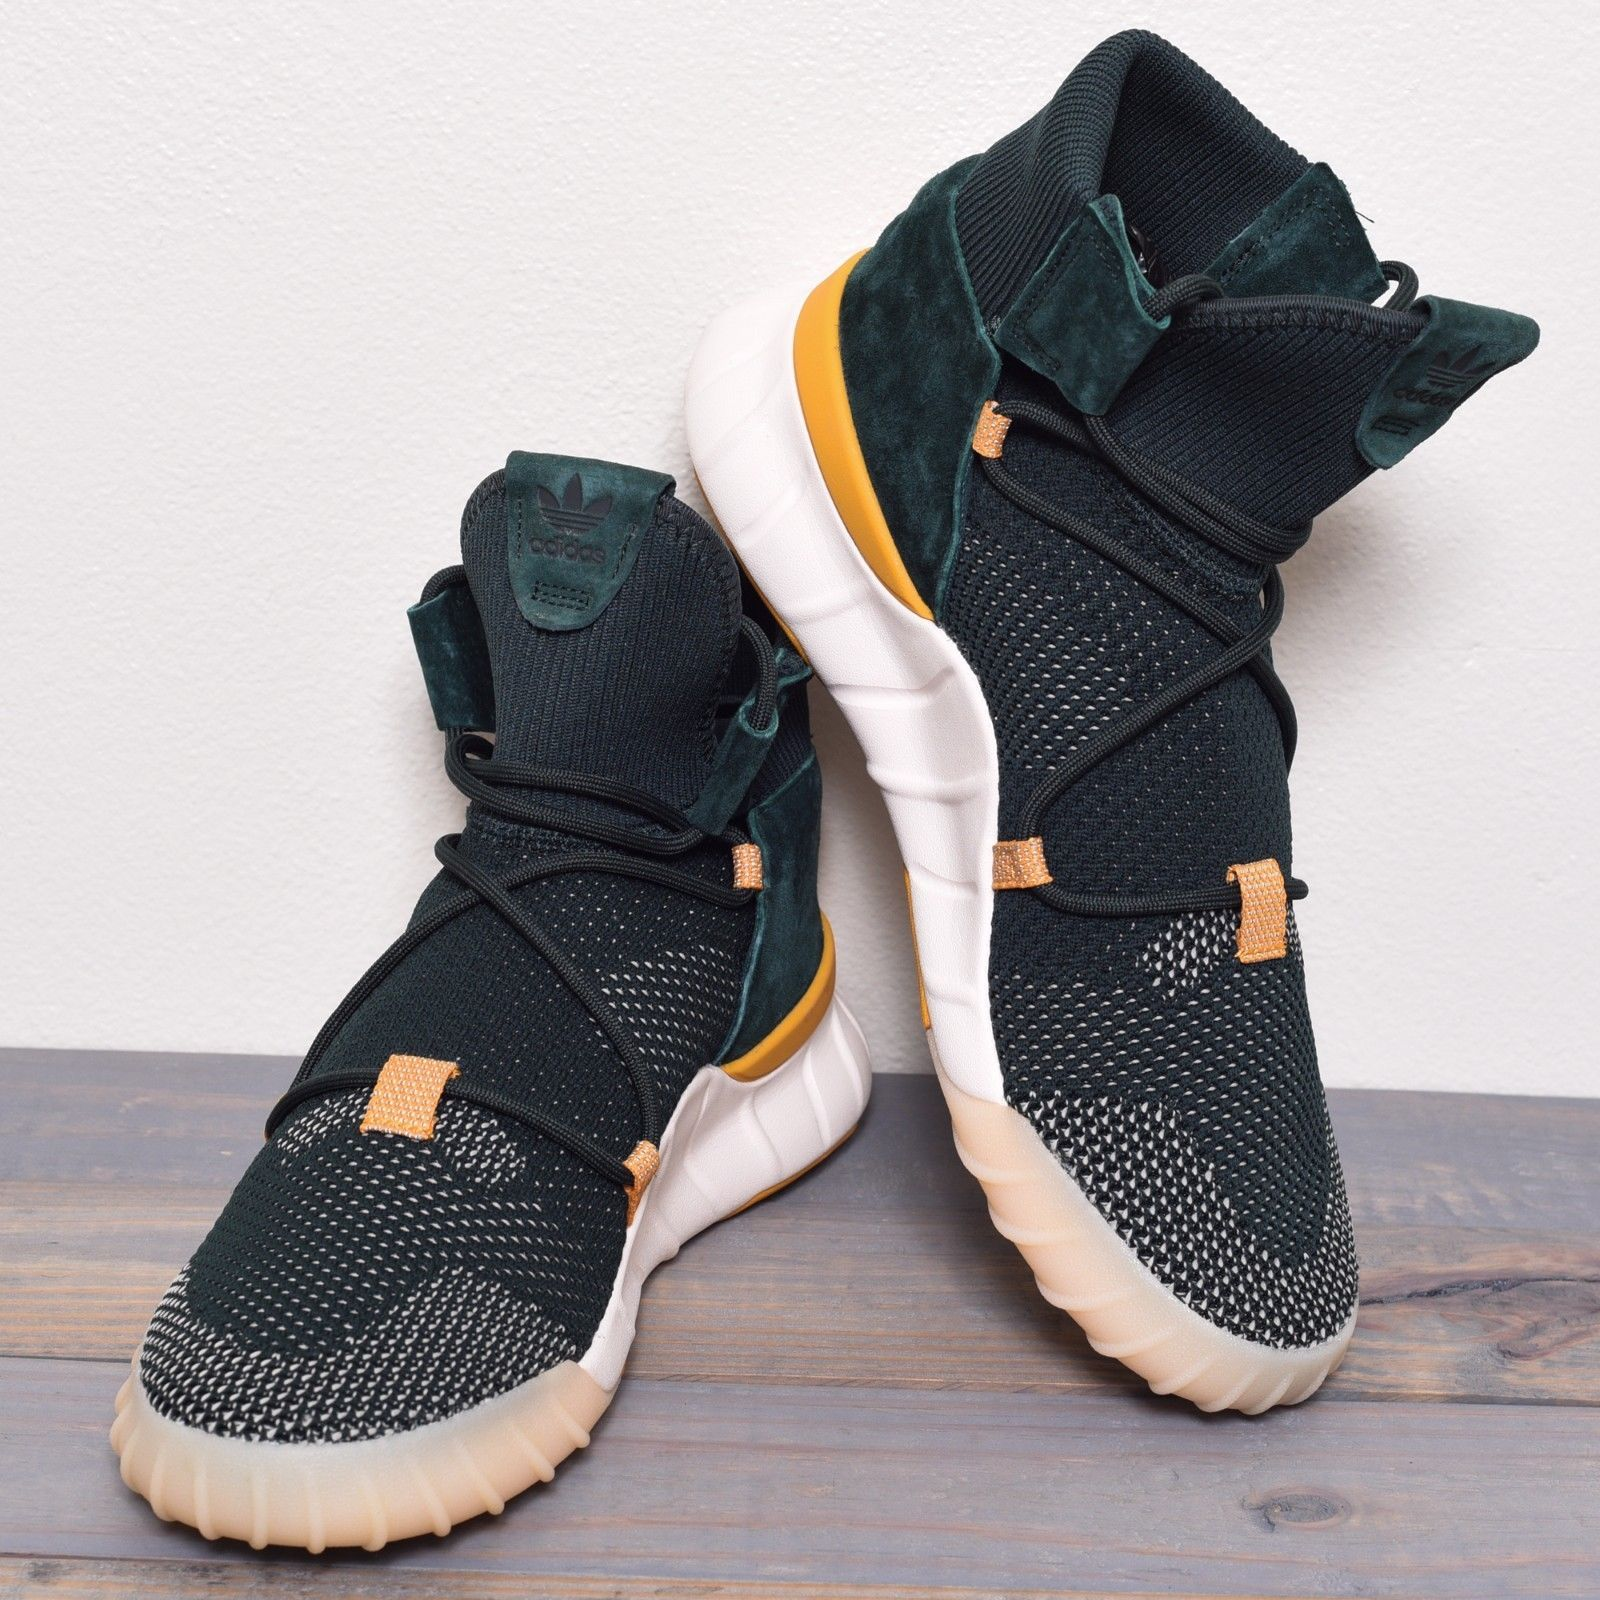 best service 9092d b20a3 ADIDAS Originals TUBULAR X 2.0 PRIME KNIT SHOES NEW Green Night Yellow PK  CQ1376